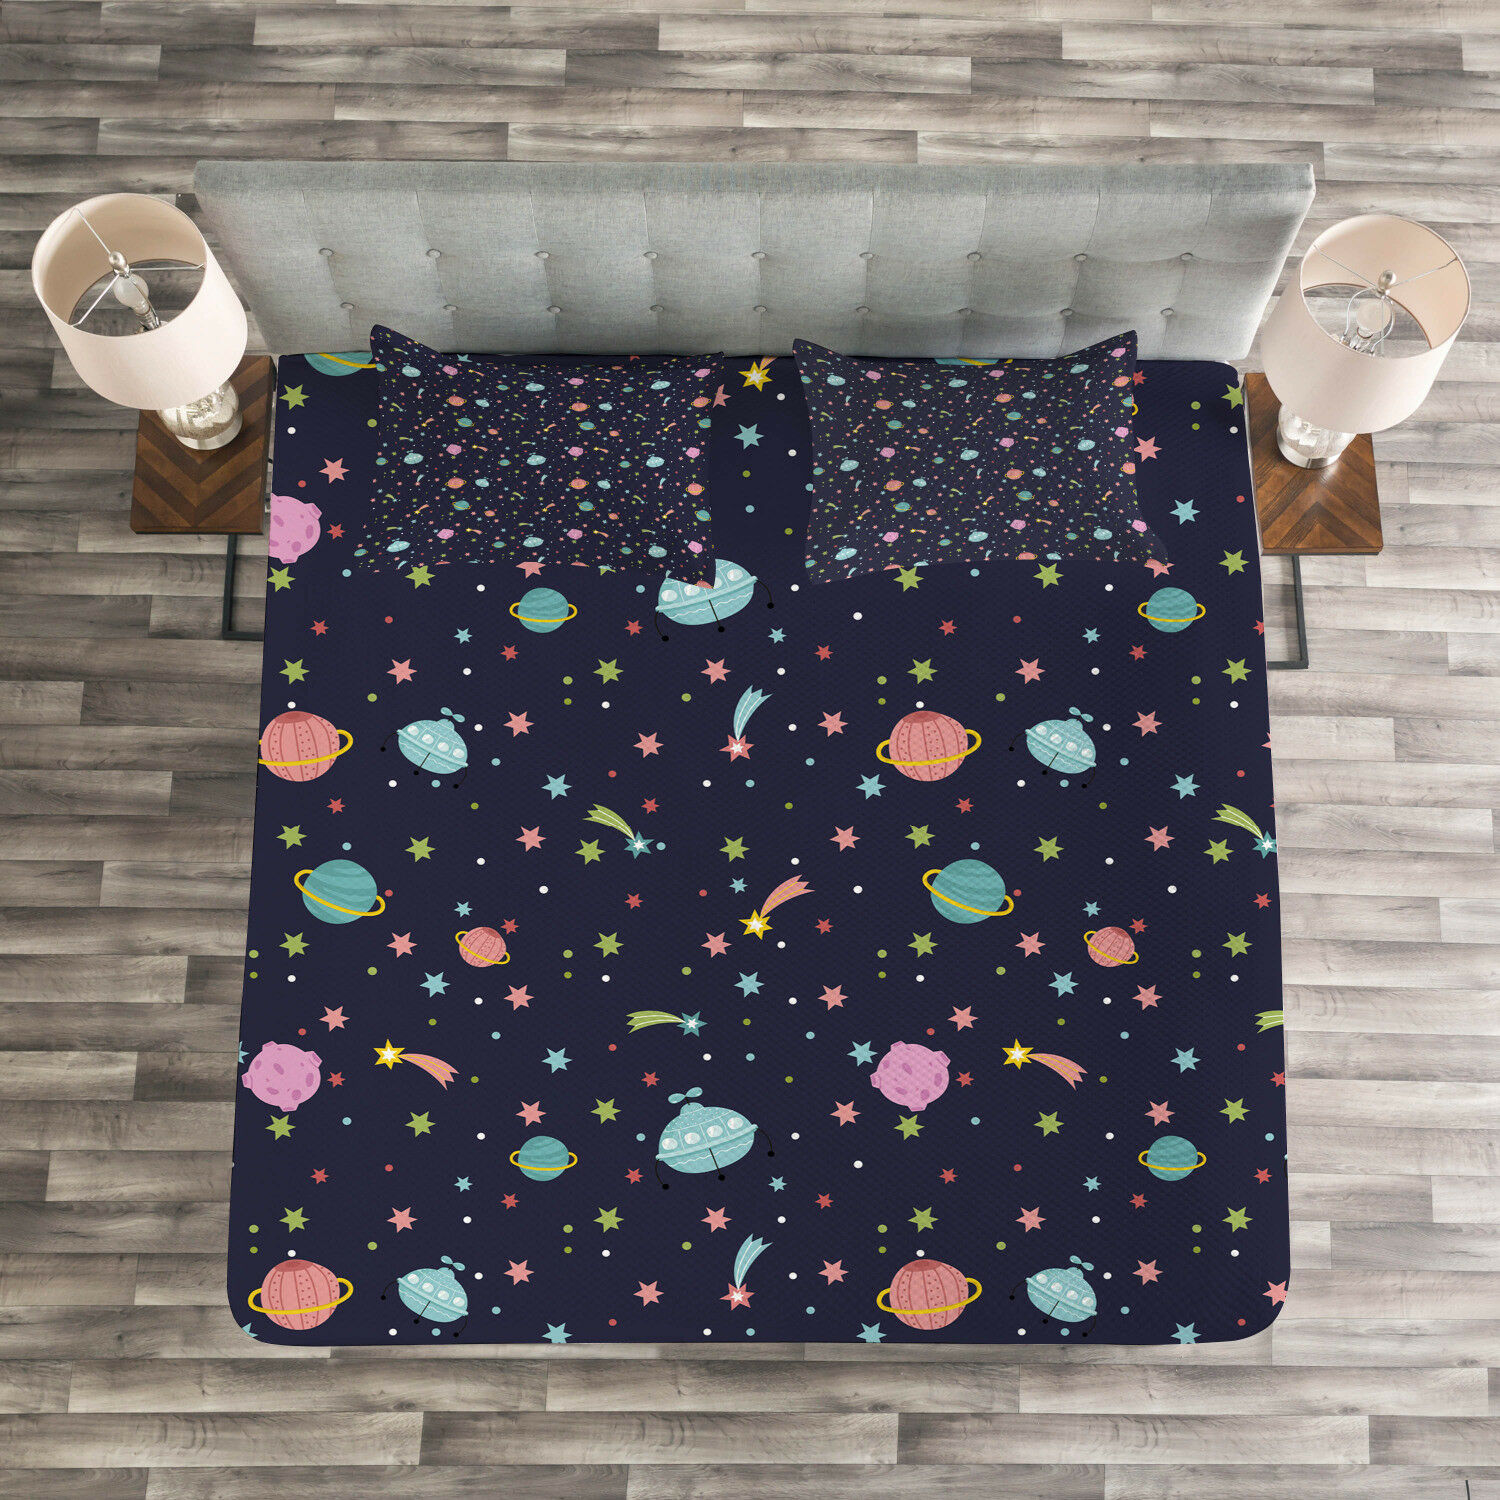 Space Quilted Bedspread & Pillow Shams Set, Alien Planets Asteroid Print